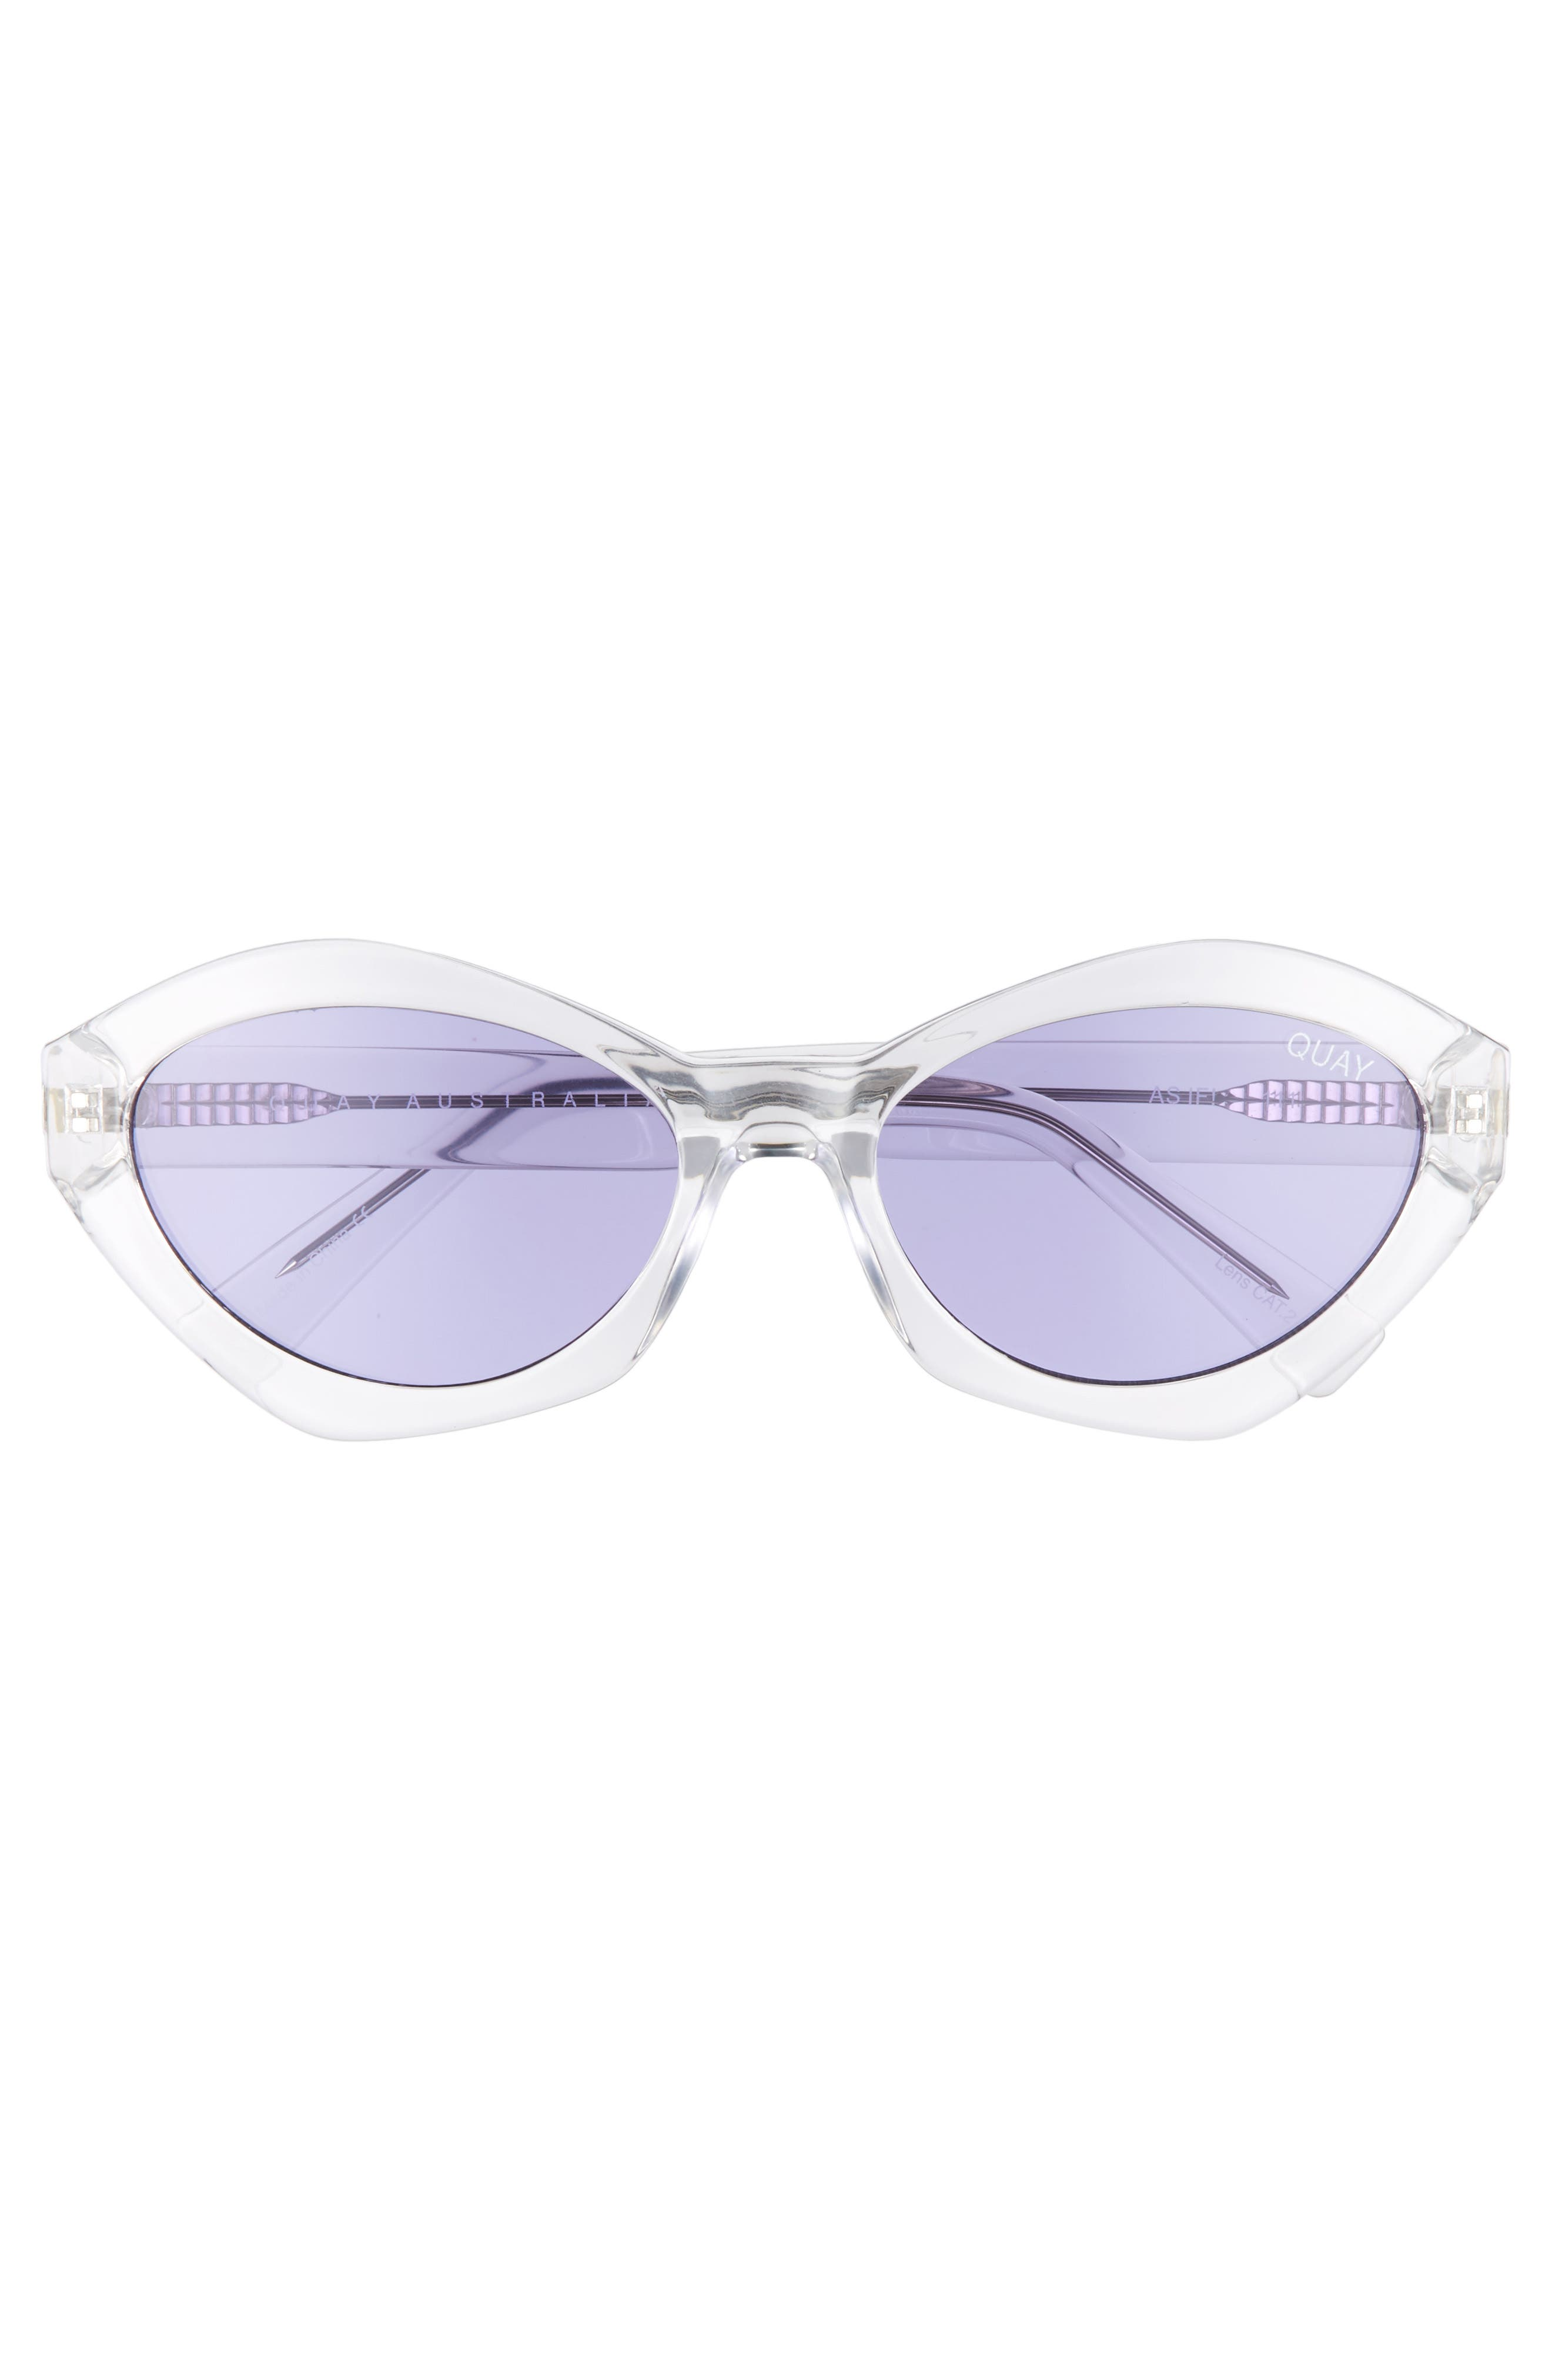 54mm As If Oval Sunglasses,                             Alternate thumbnail 3, color,                             100